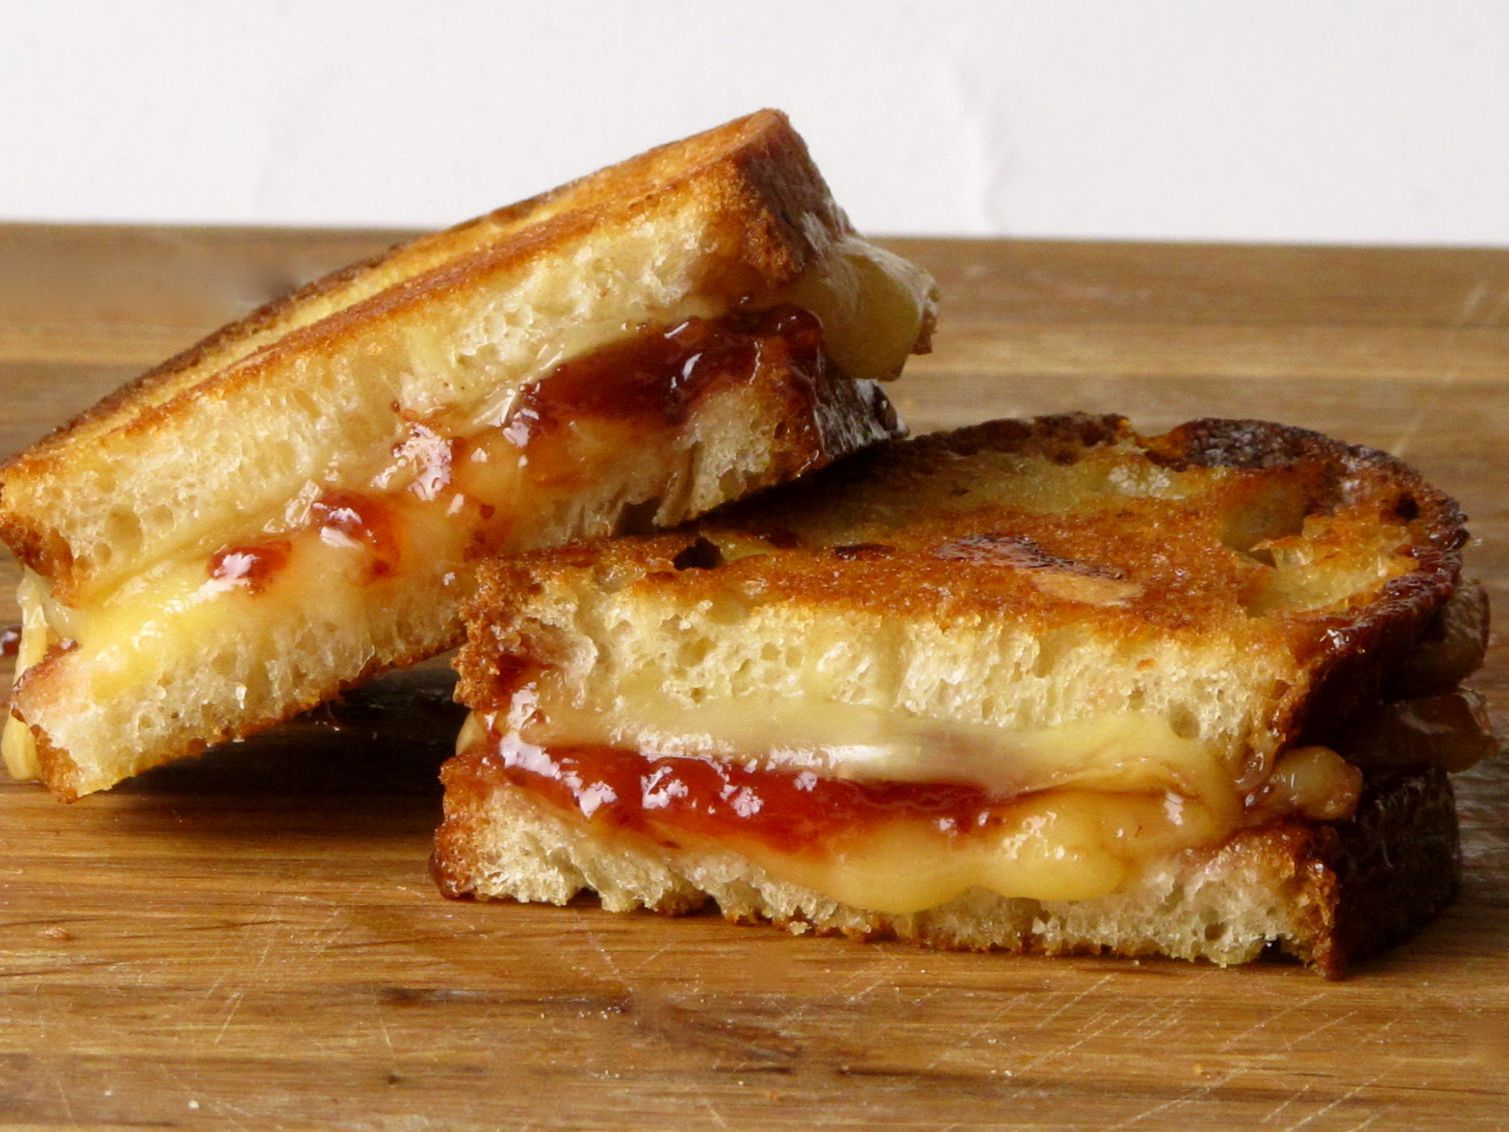 8 Amazing Ways To Use Jam Or Jelly In Sandwiches